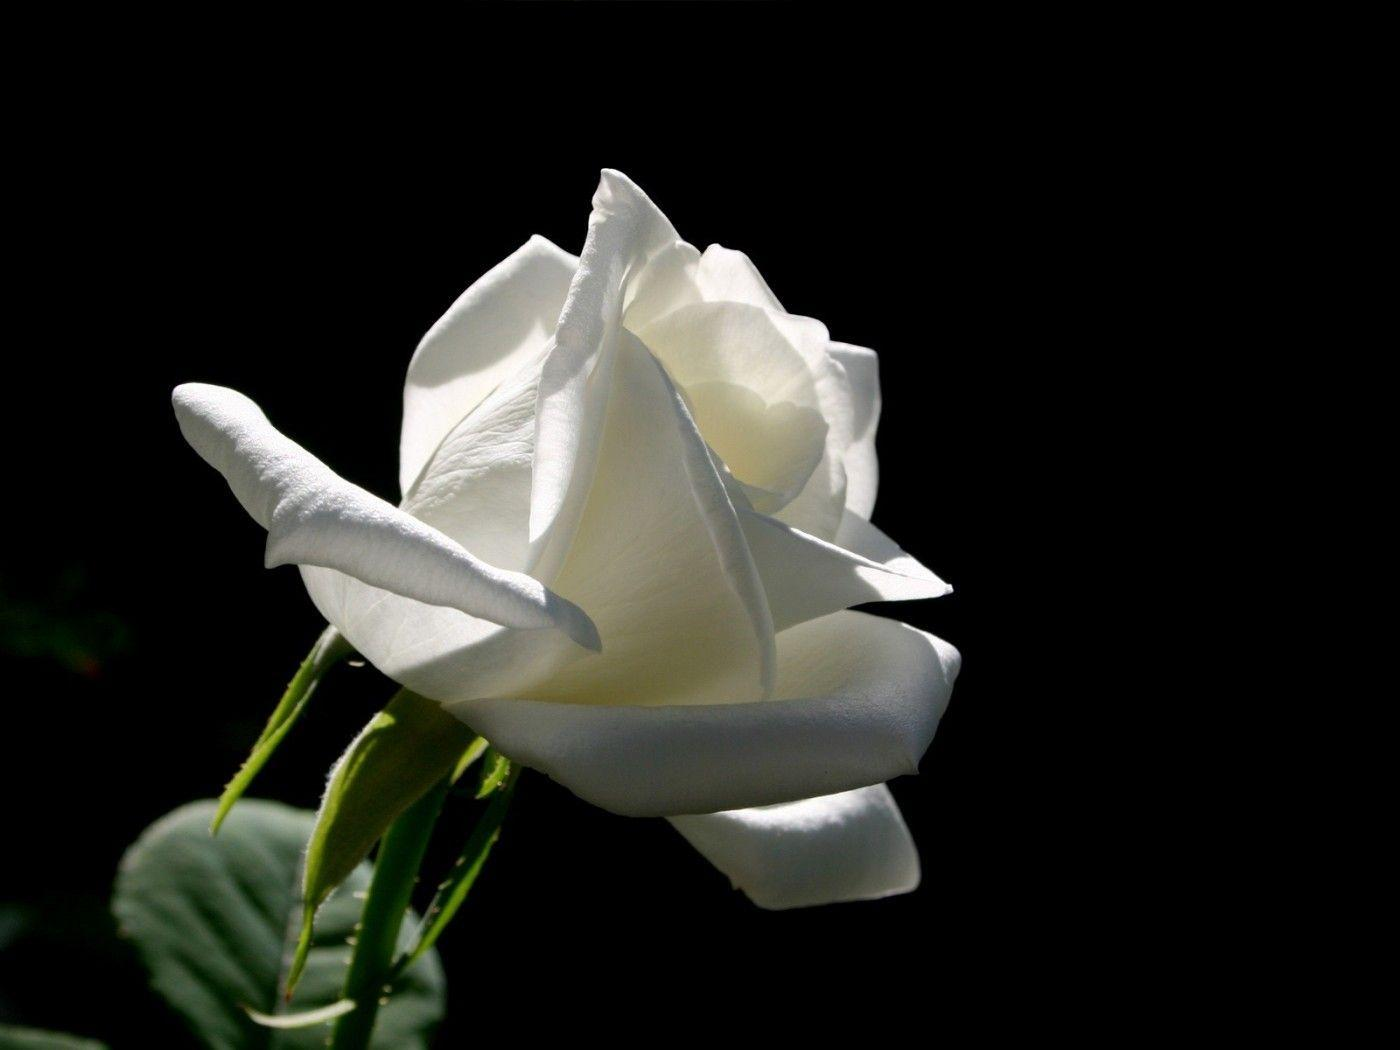 White Roses Black Backgrounds Wallpaper Cave